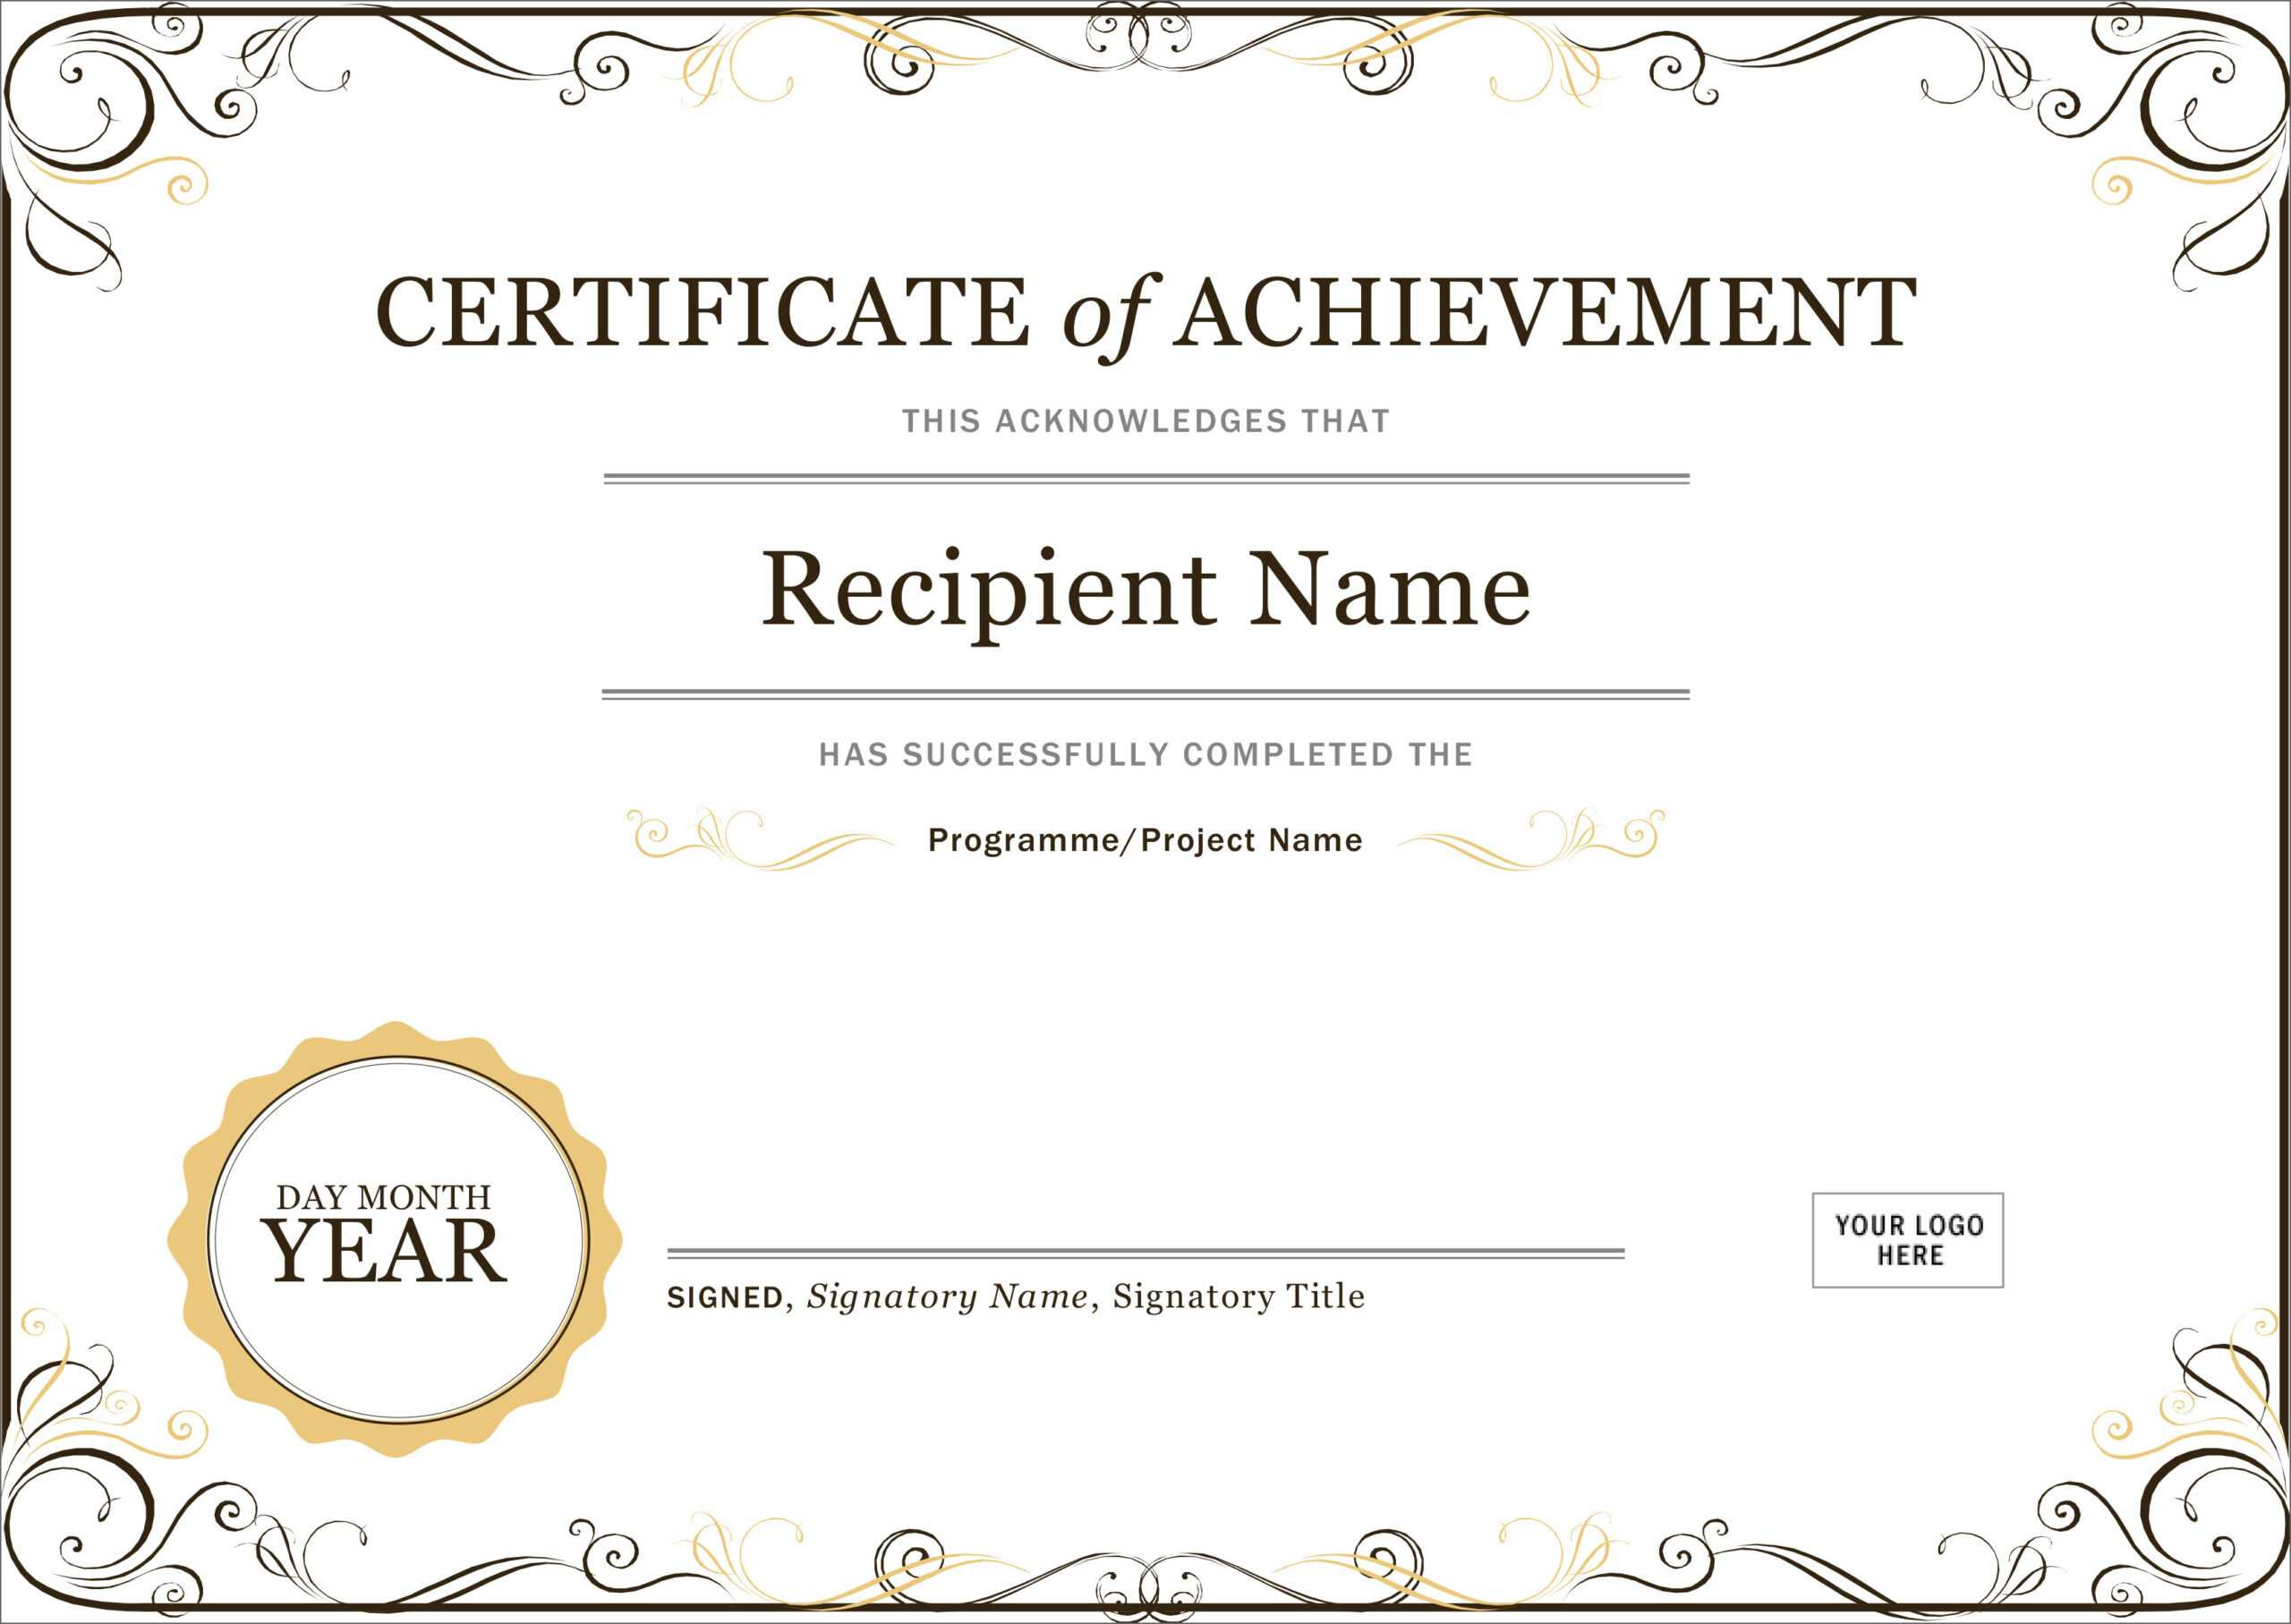 50 Free Creative Blank Certificate Templates In Psd For Word Certificate Of Achievement Template